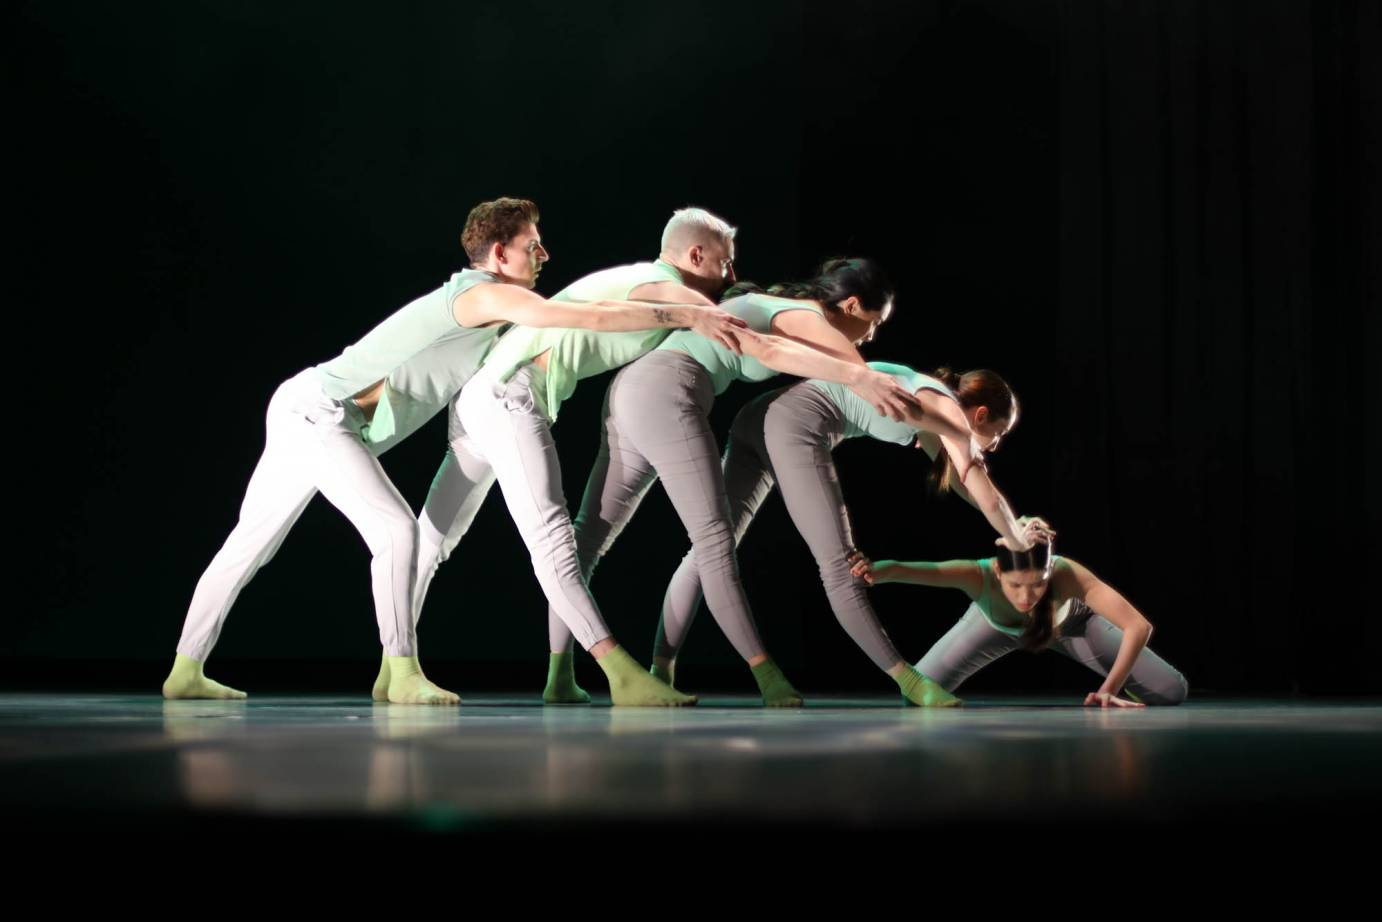 Dancers fold over each other in a line with one kneeling dancer grabbing the knee of the leader